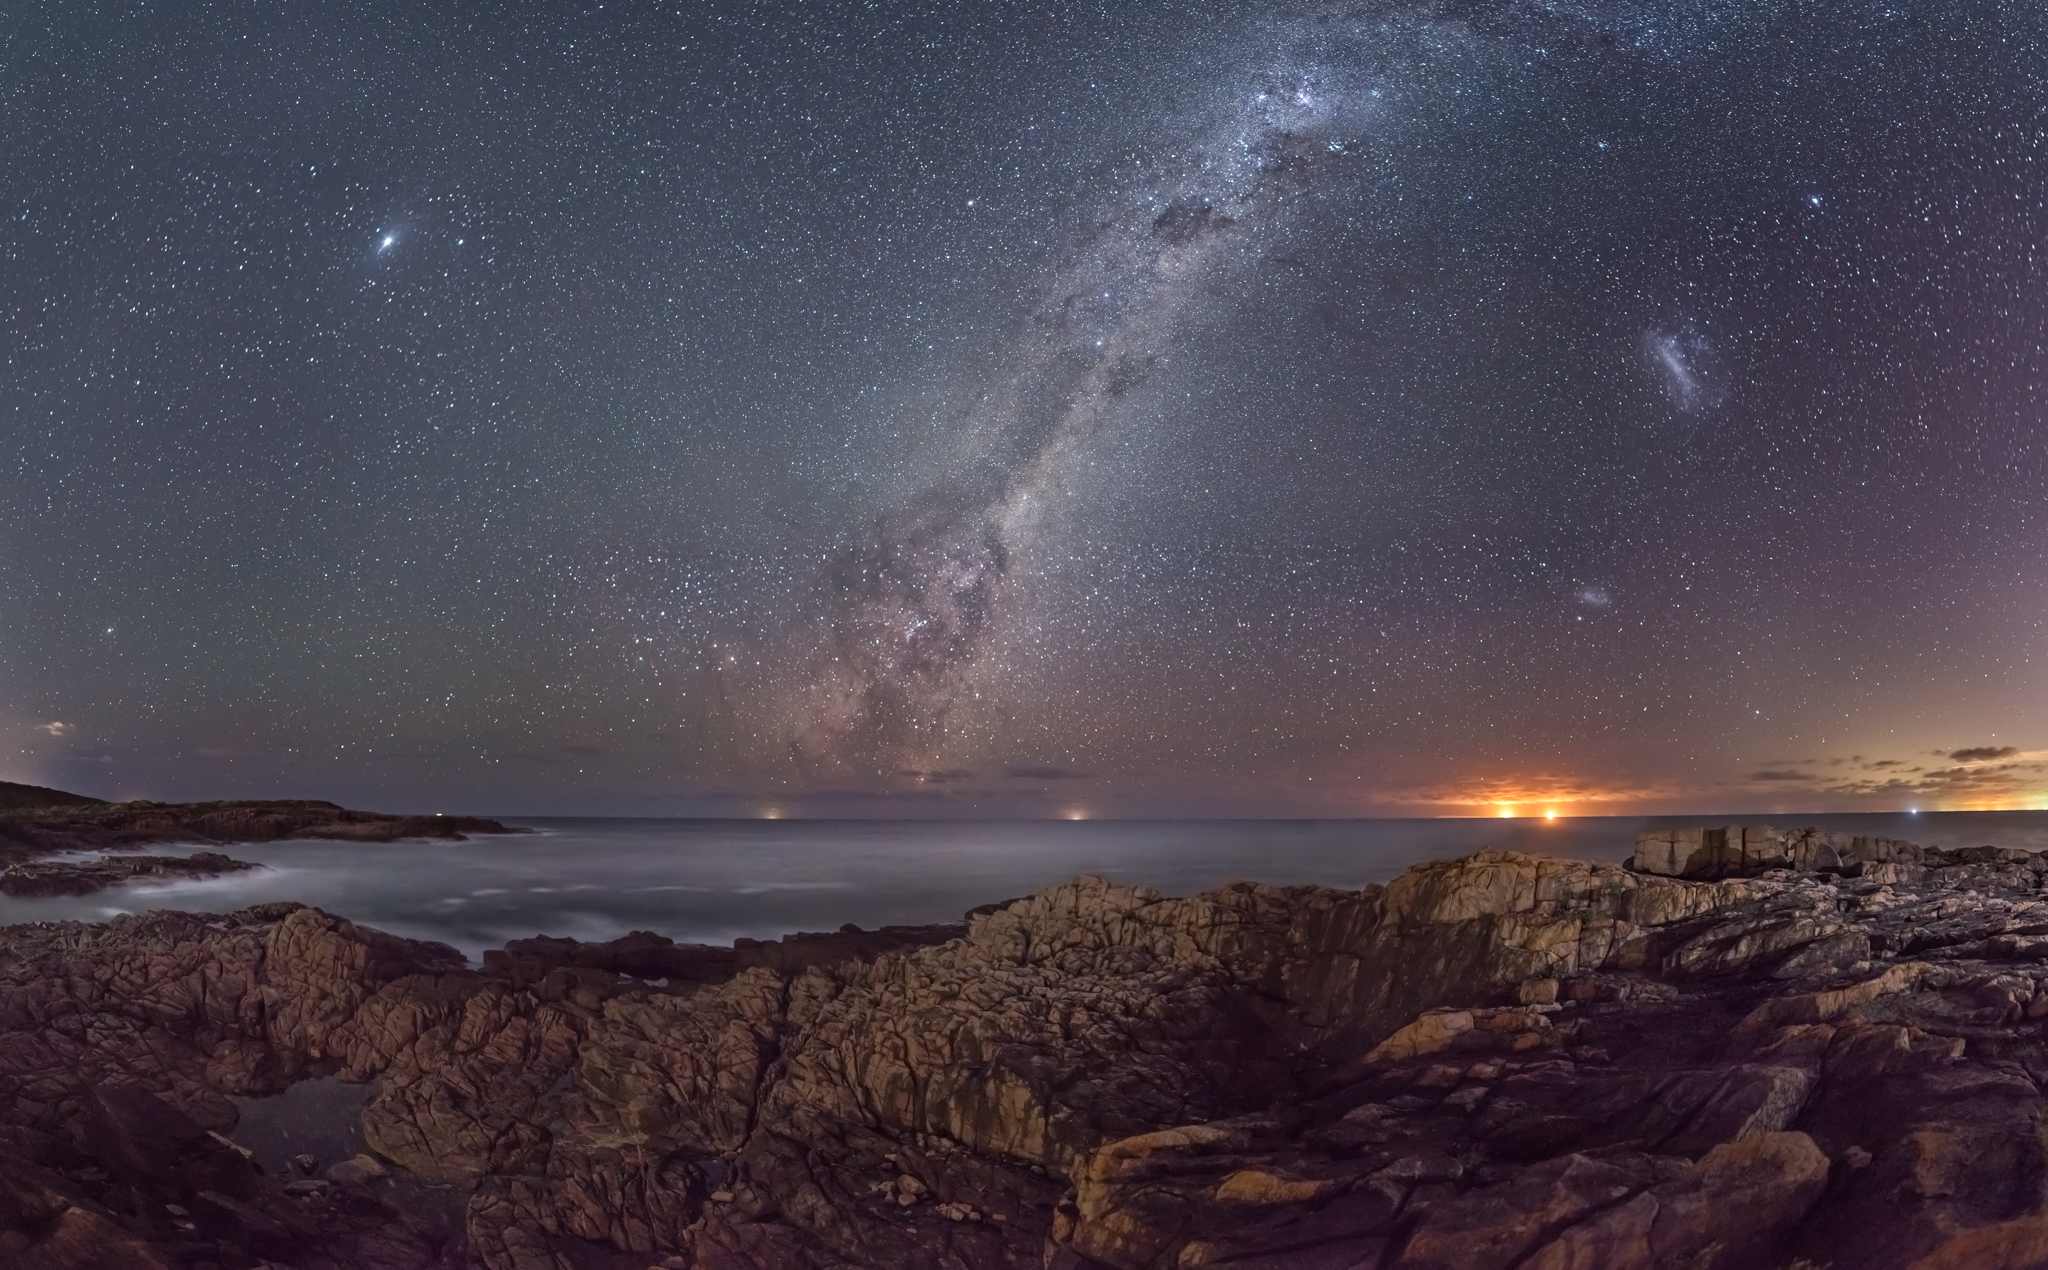 Boat-Harbour-Astro-Gigapan-1